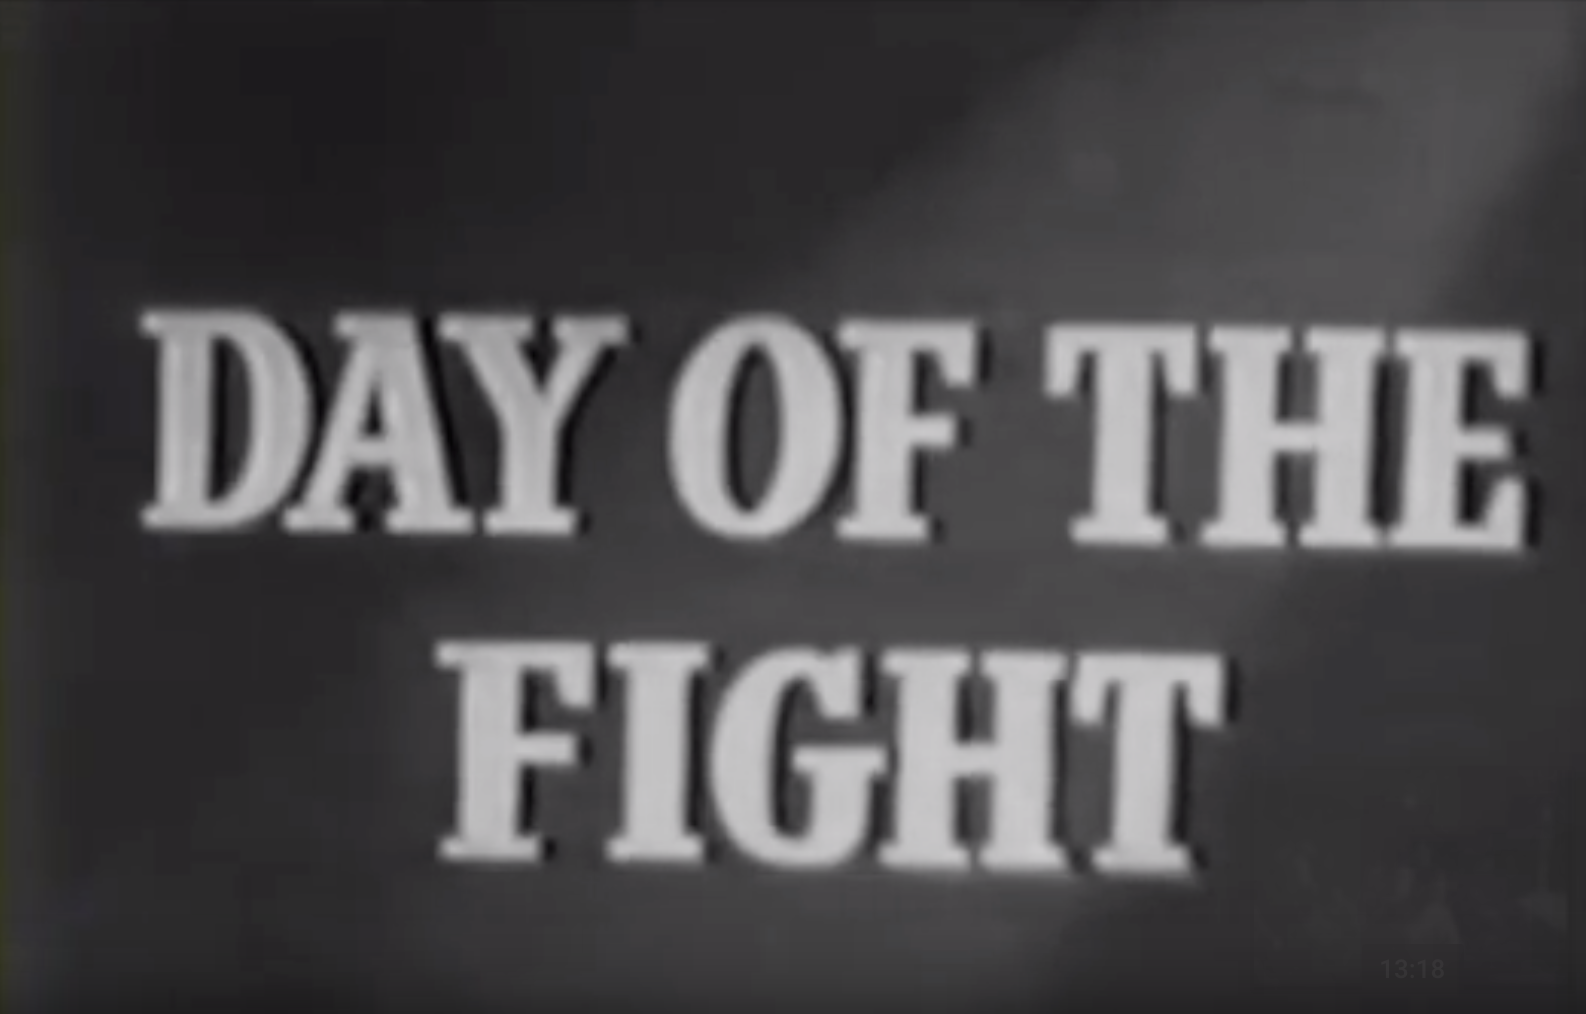 Stanley Kubrick's Day of the Fight [Edited]